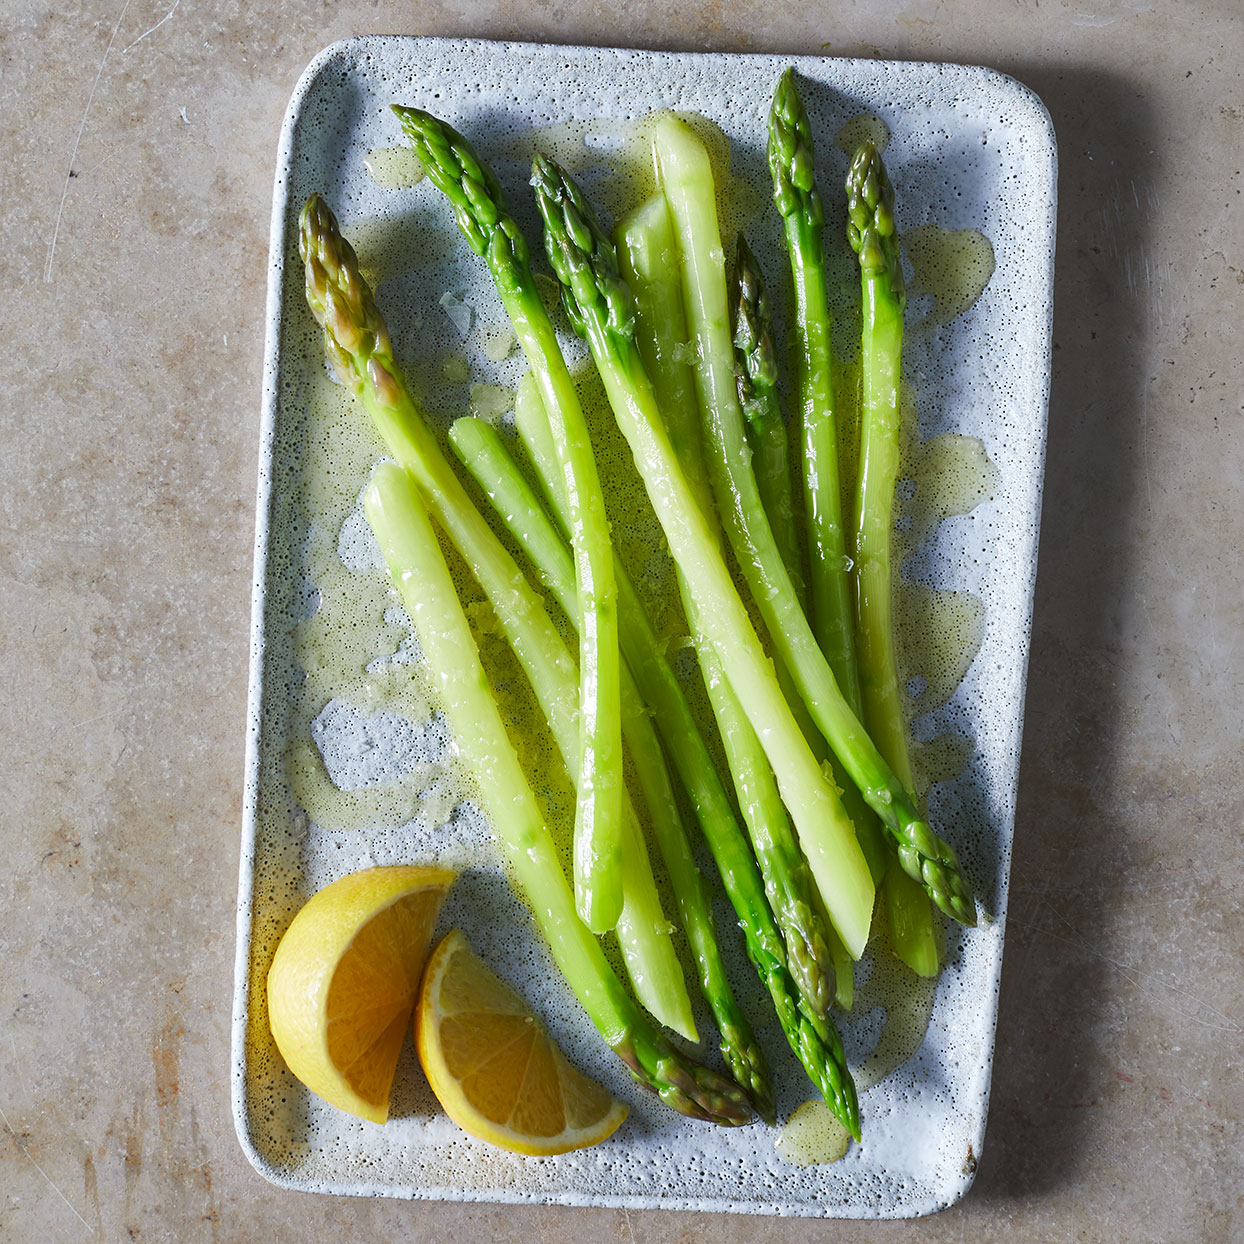 Peeled-and-cooked-asparagus